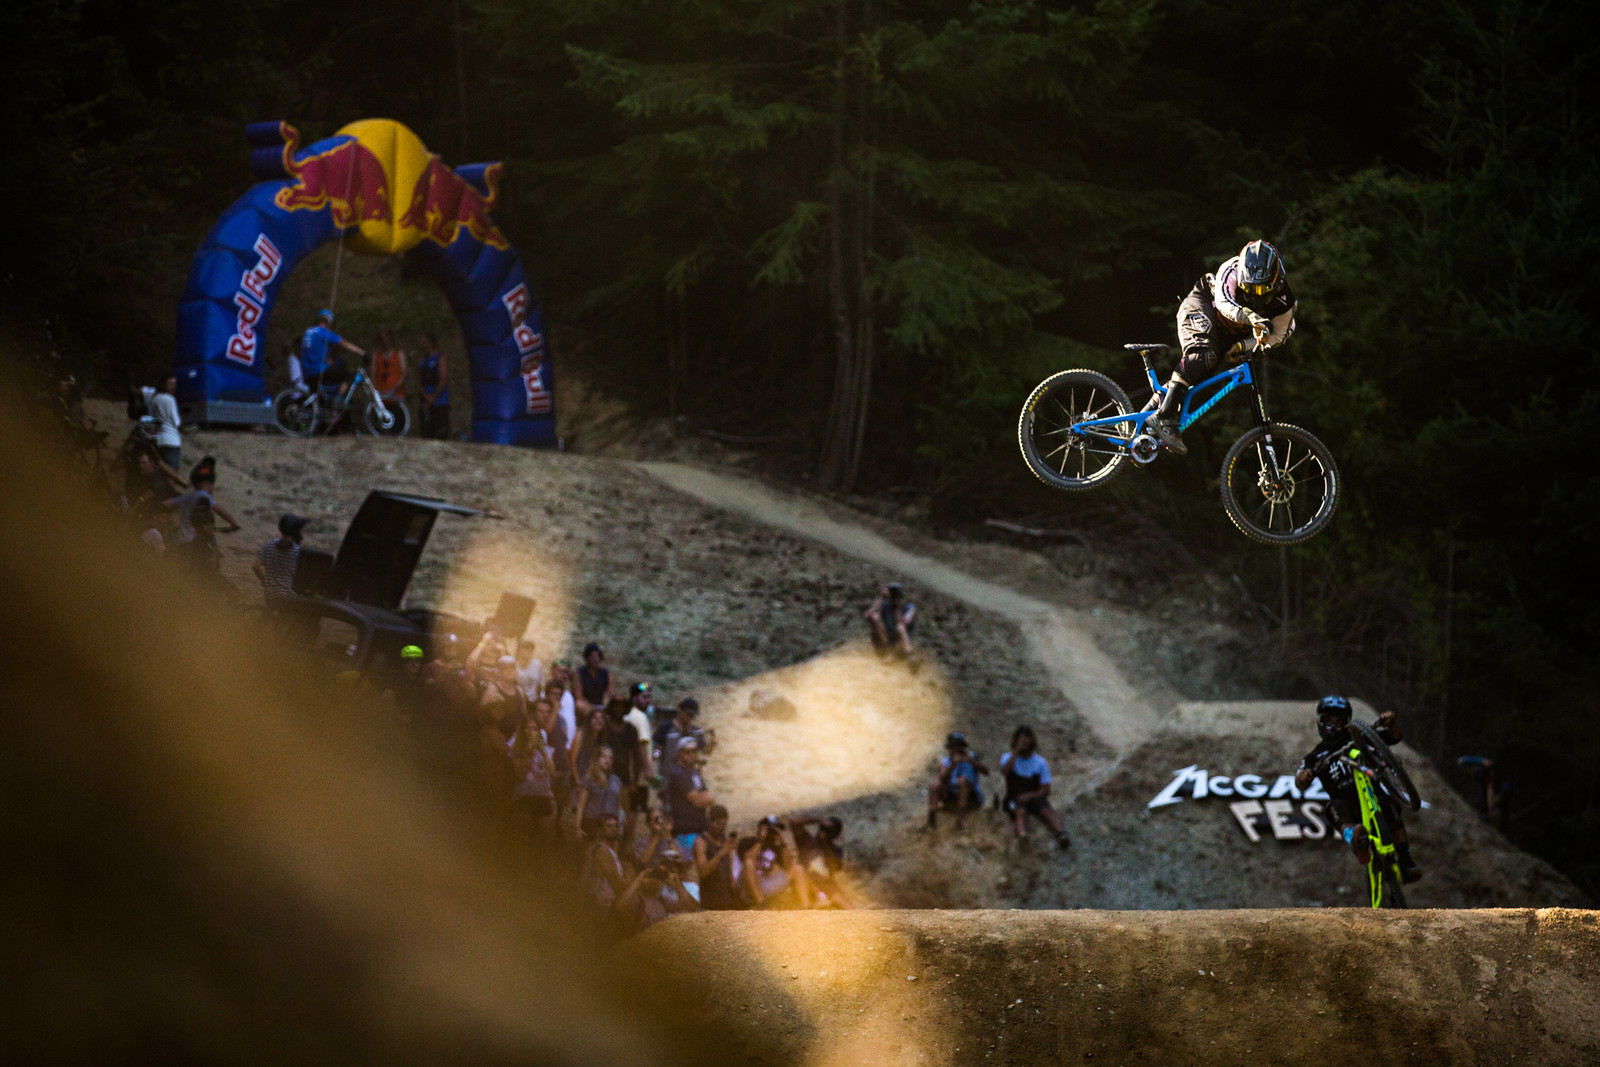 Remy Morton - McGazza Fest Dream Track Jam - Mountain Biking Pictures - Vital MTB